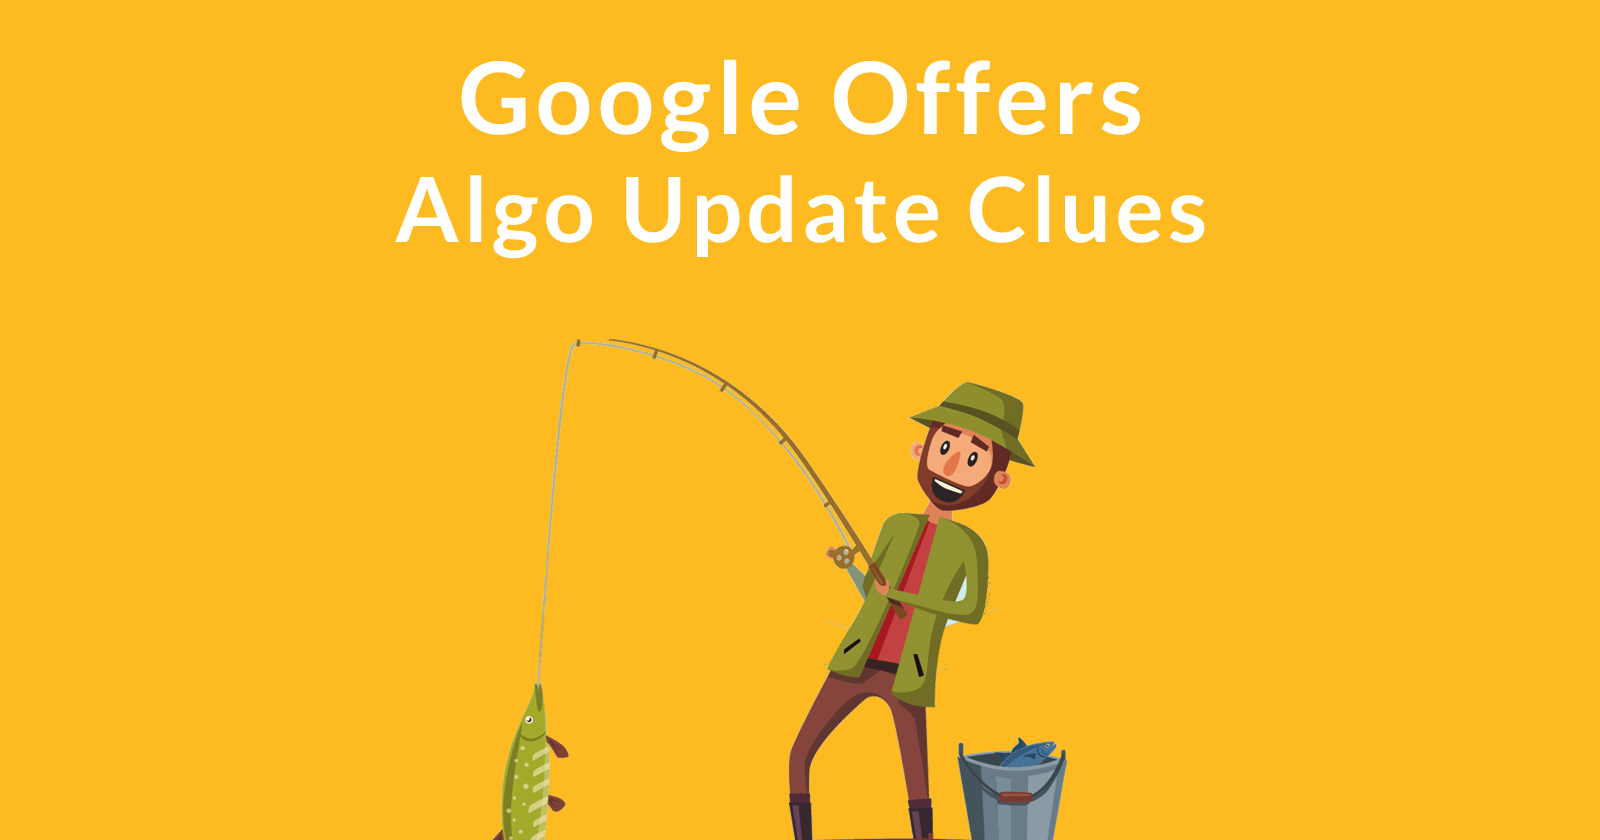 Google Offers More Algo Update Details by @martinibuster